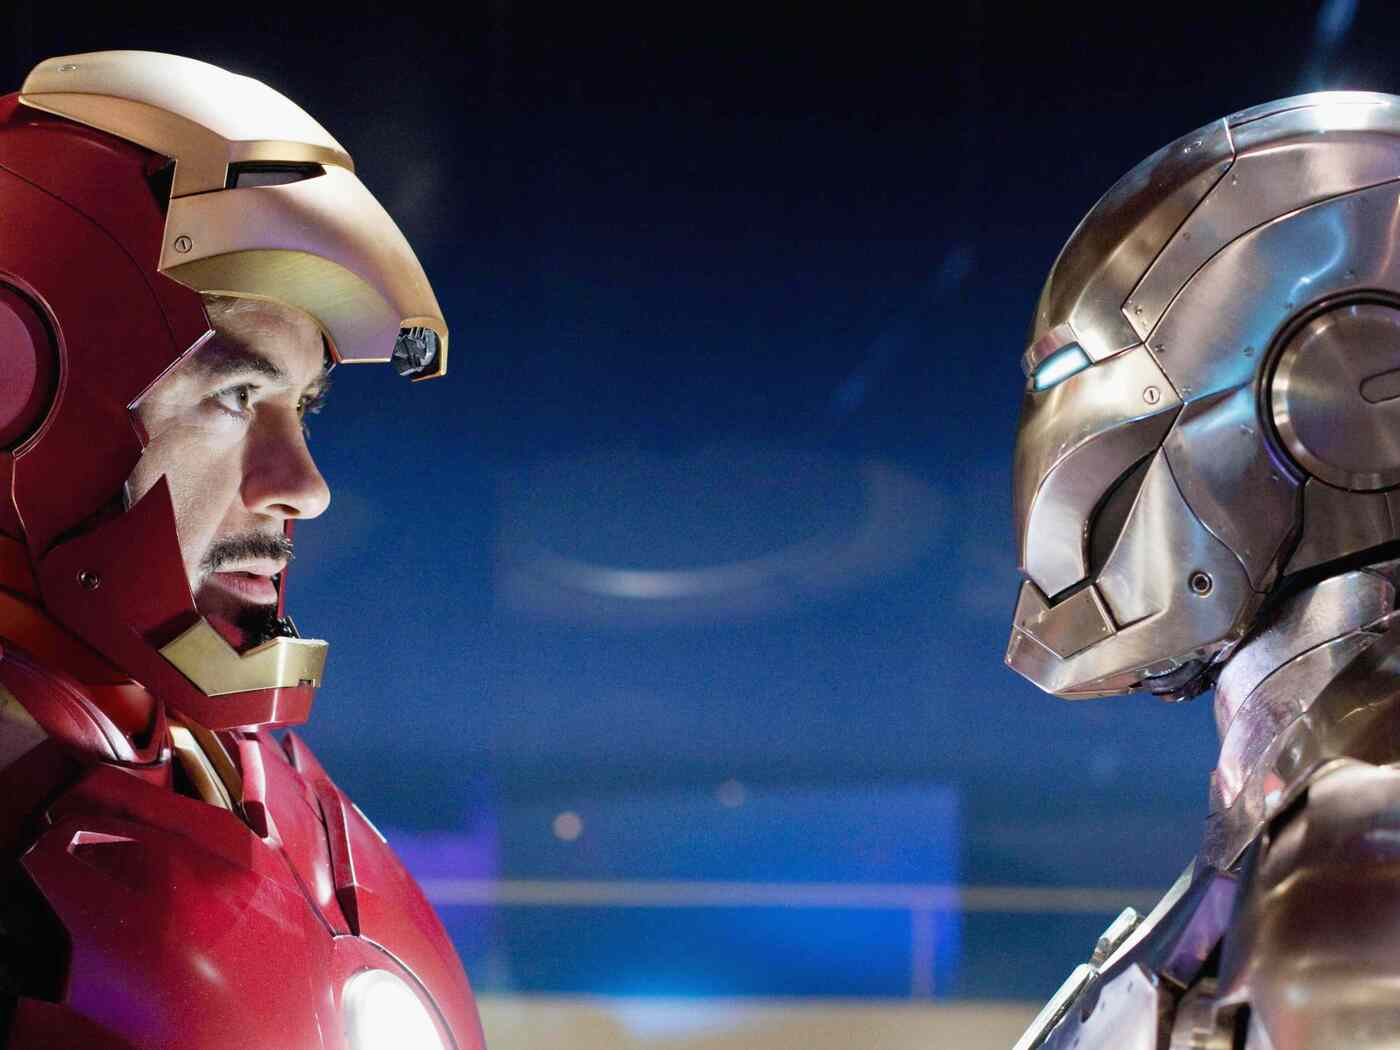 iron-man-and-war-machine-bj.jpg